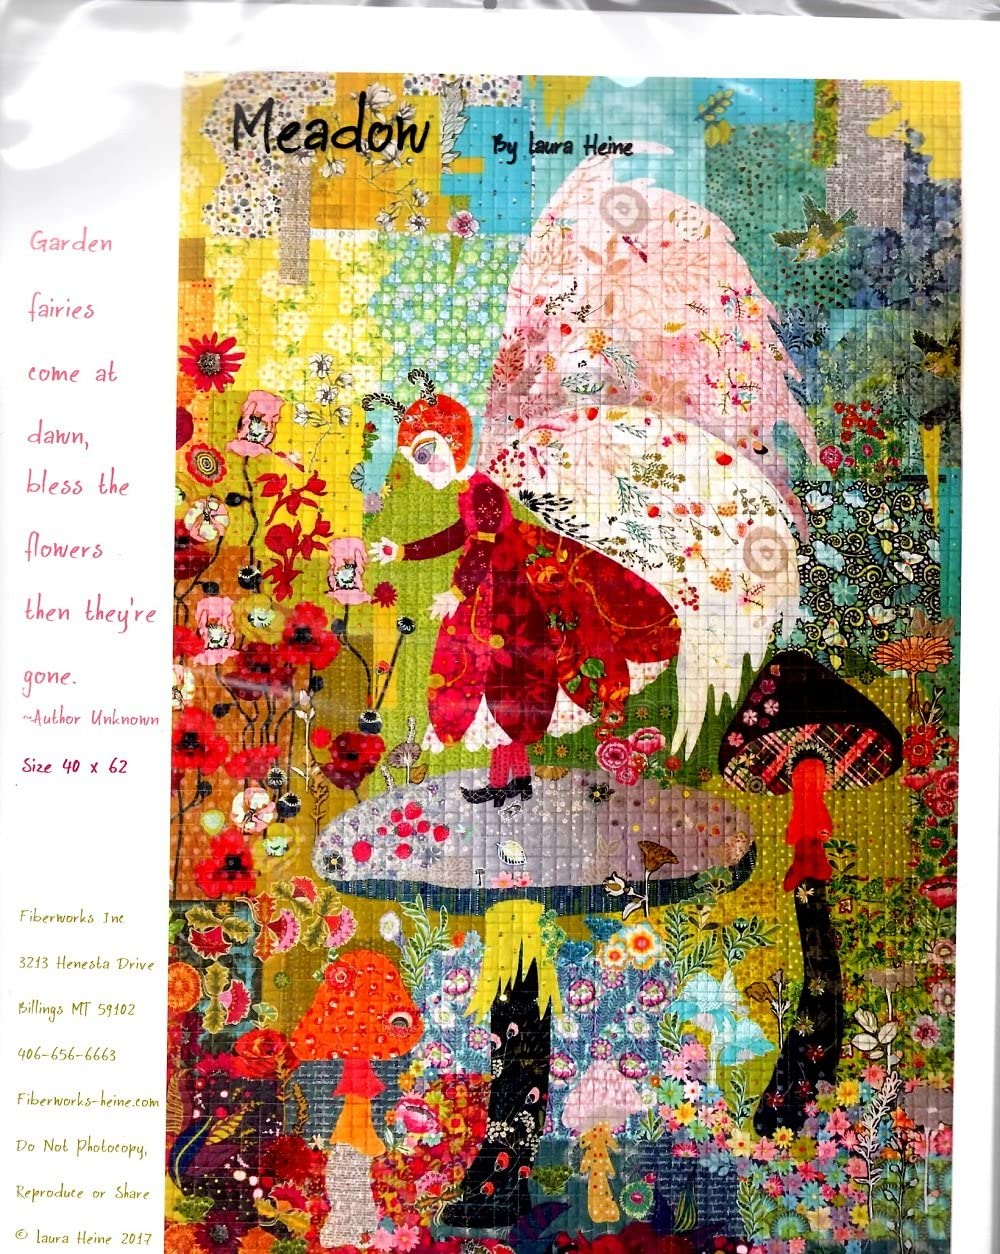 Meadow the Fairy Oakland Mall Collage Applique Quilt Laura quality assurance Heine by Pattern f